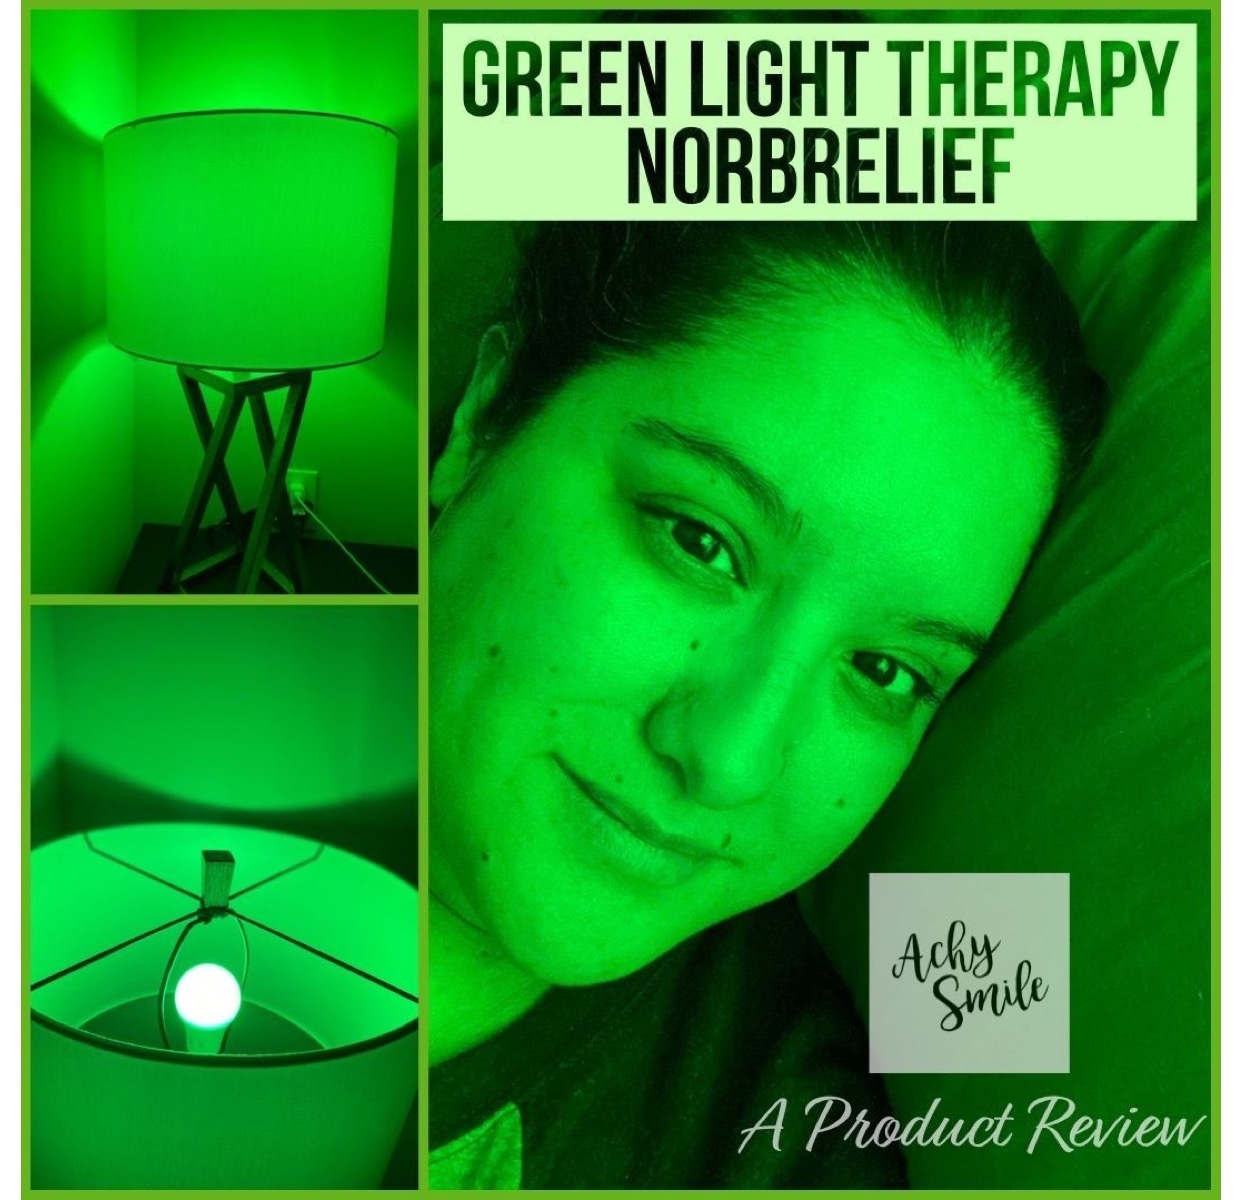 Erica at Achy Smile blog using her anti-migraine NorbRELIEF green LED light.